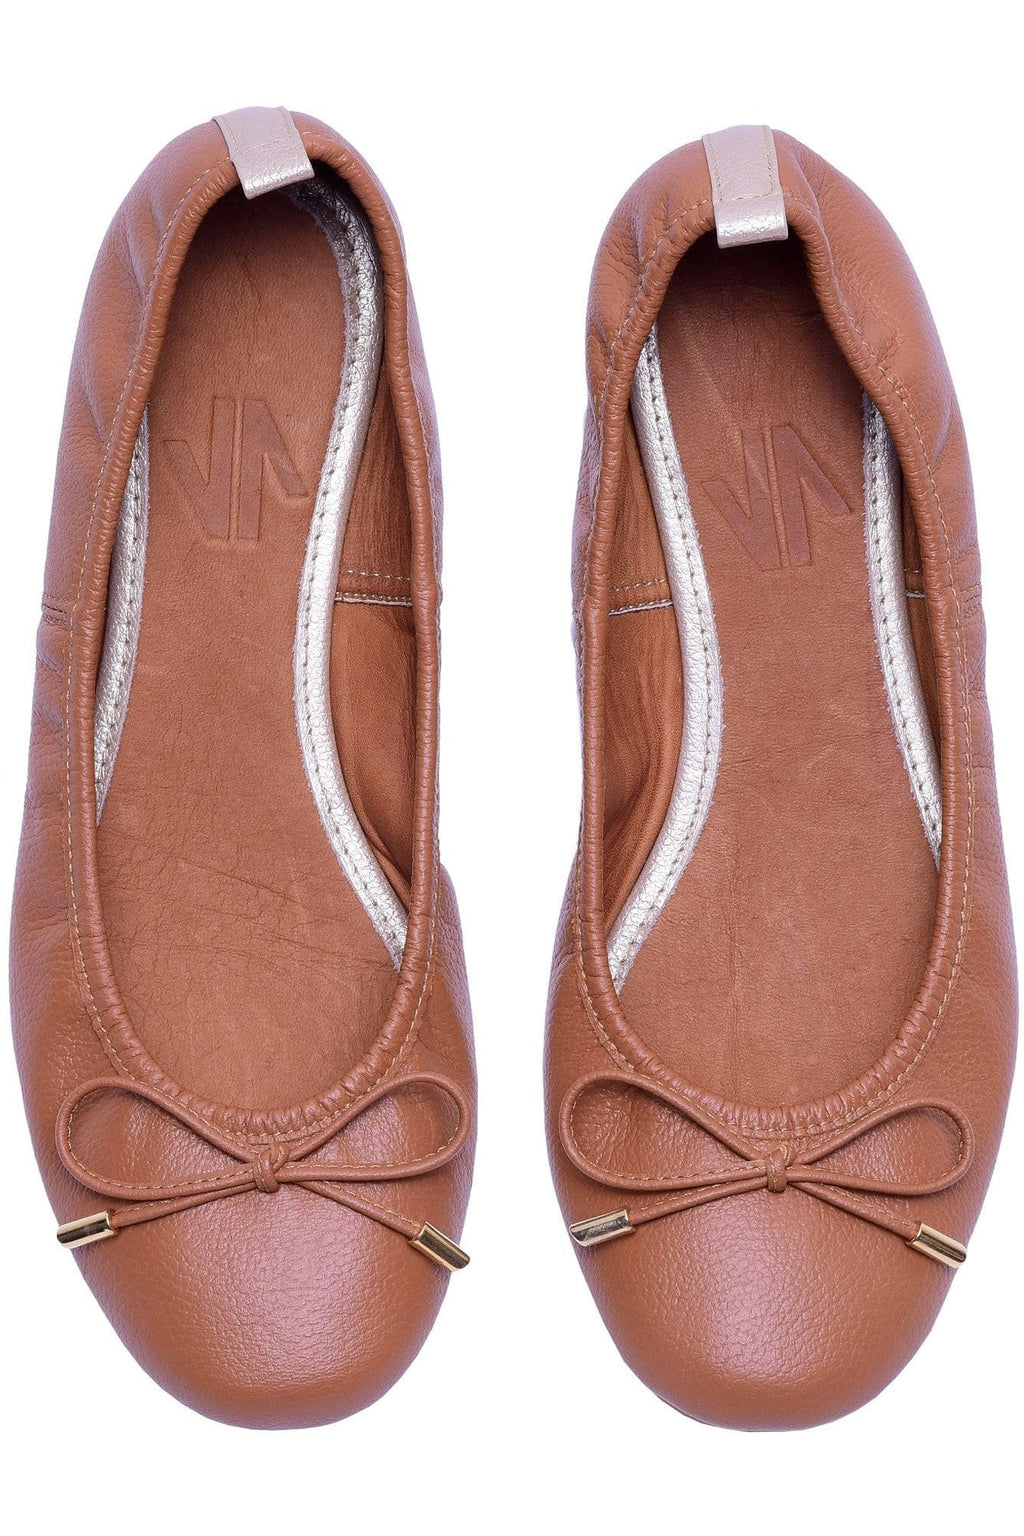 Columbian Leather Ballerina Flats in Brown - Himelhoch's